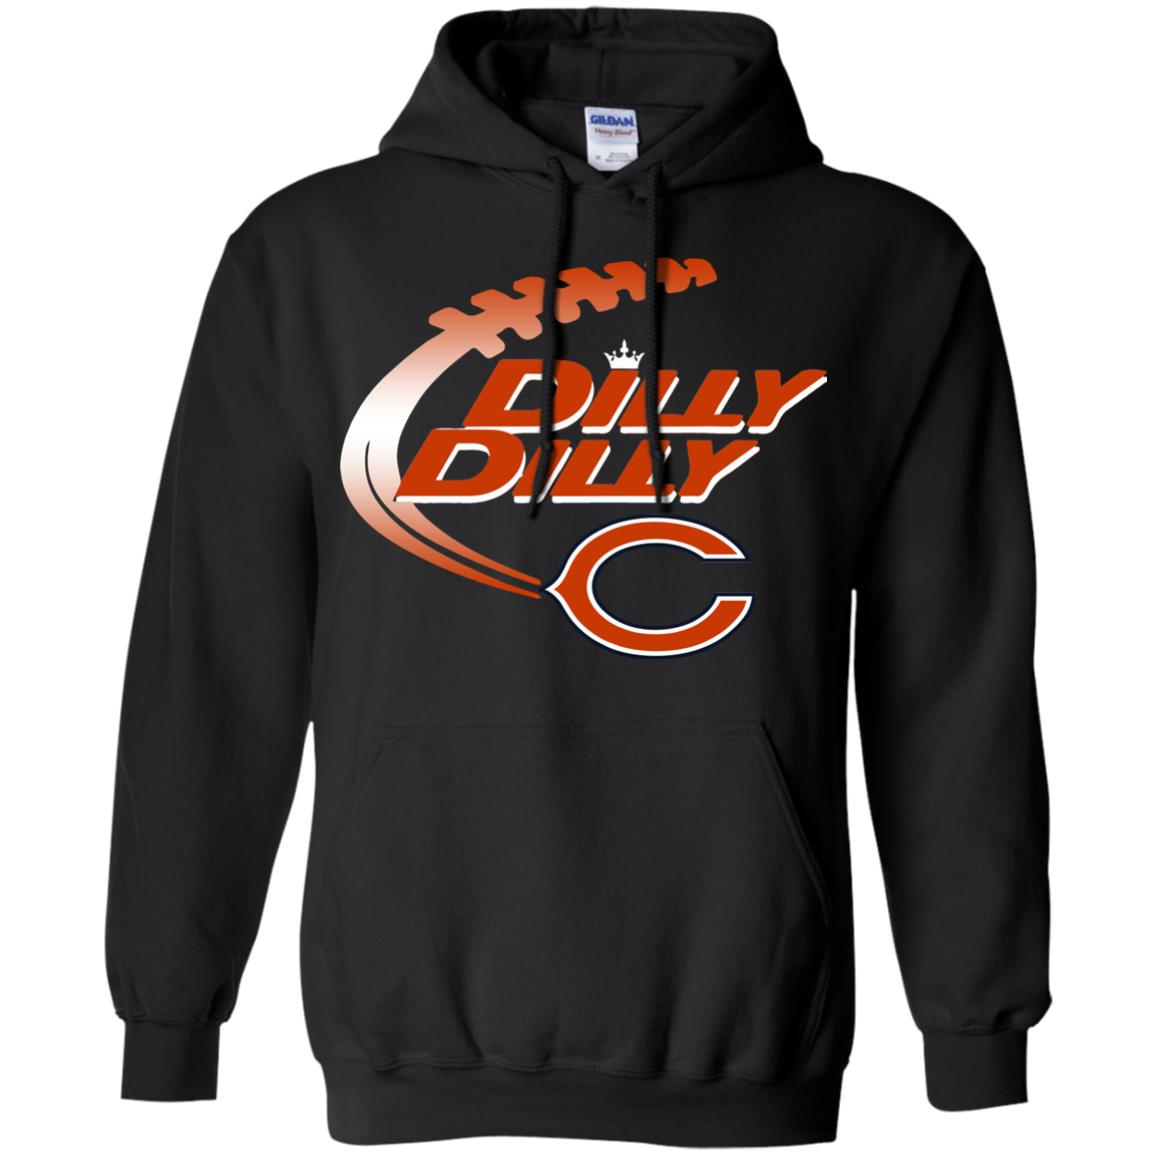 image 1685 - Dilly Dilly Chicago Bears Shirt, Sweater, Hoodie